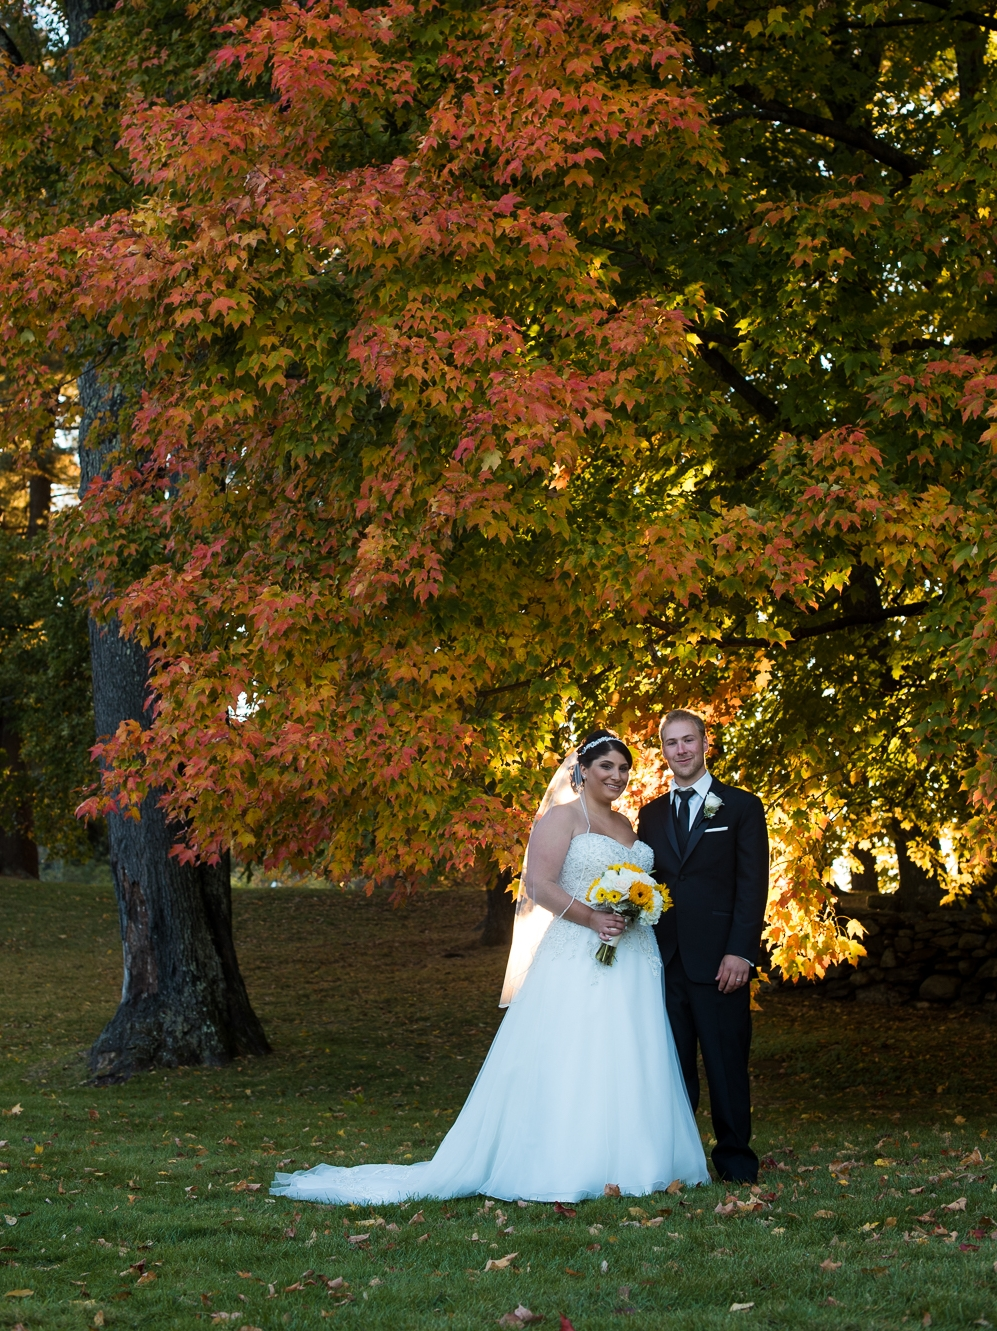 Kara Emily Krantz Photography, MA outdoor wedding photographer